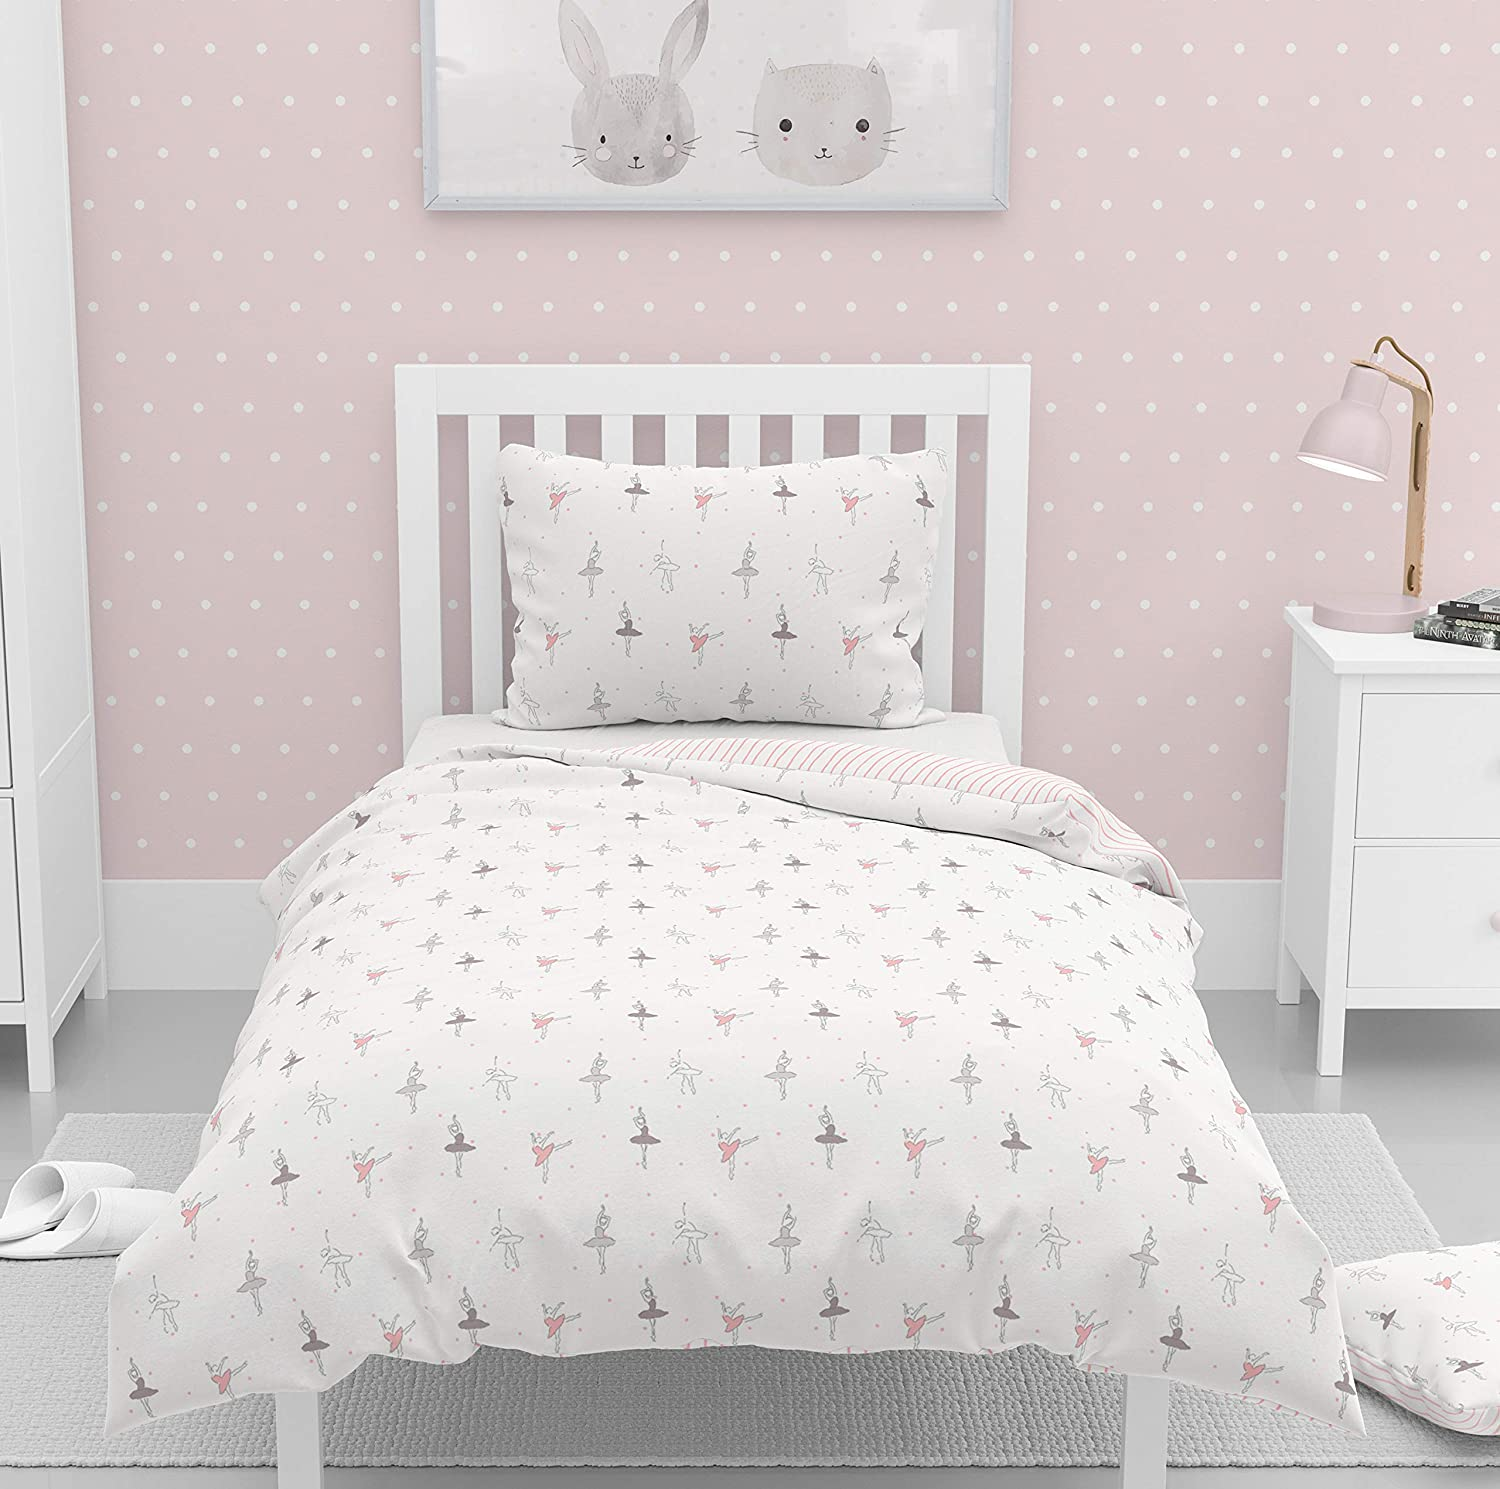 Organic Duvet Cover Twin (Pack of 3) GOTS Certified Organic Cotton Duvet Set Twin/Single with Pillowcase Dreamy Soft Reversible Breathable Hypoallergenic Kids Room (Twin, Ballerina & Pink Stripes)